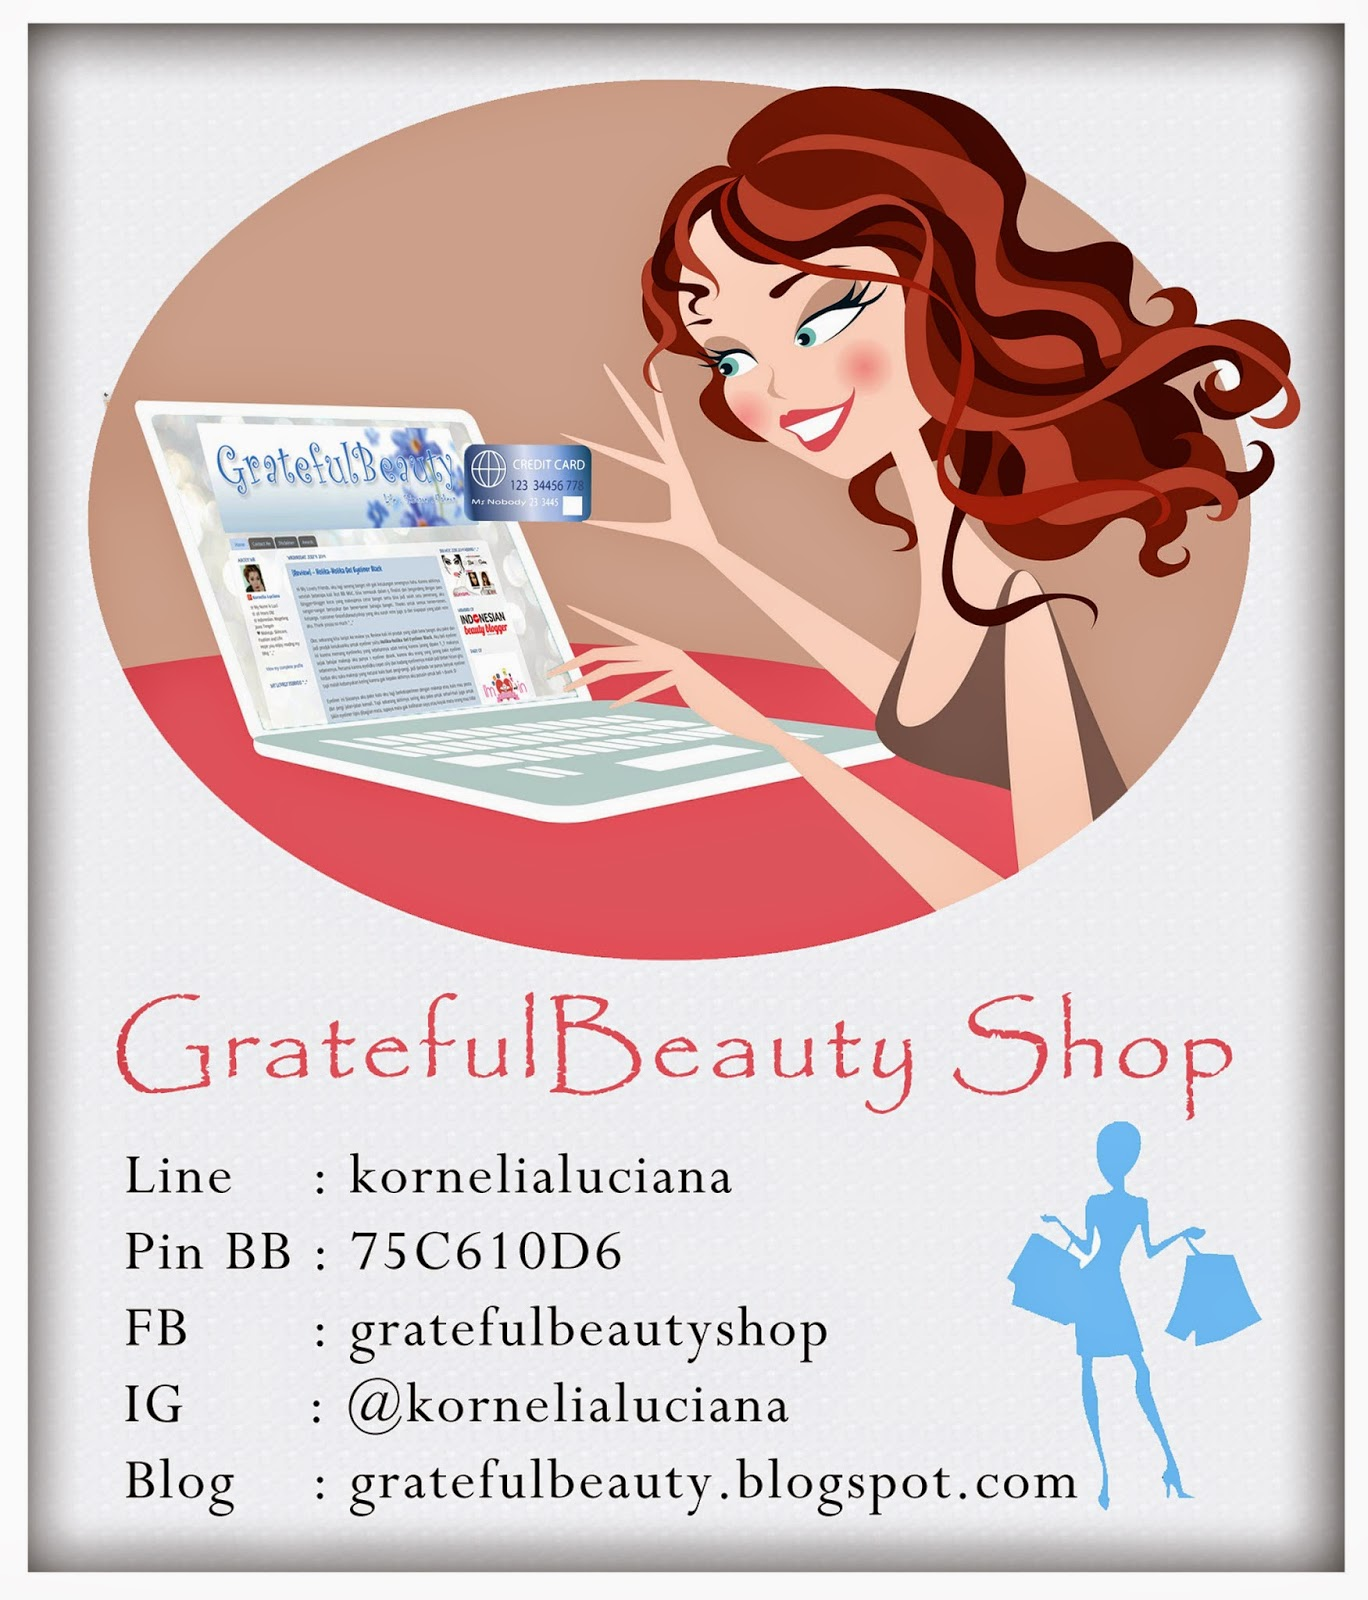 https://www.facebook.com/gratefulbeautyshop